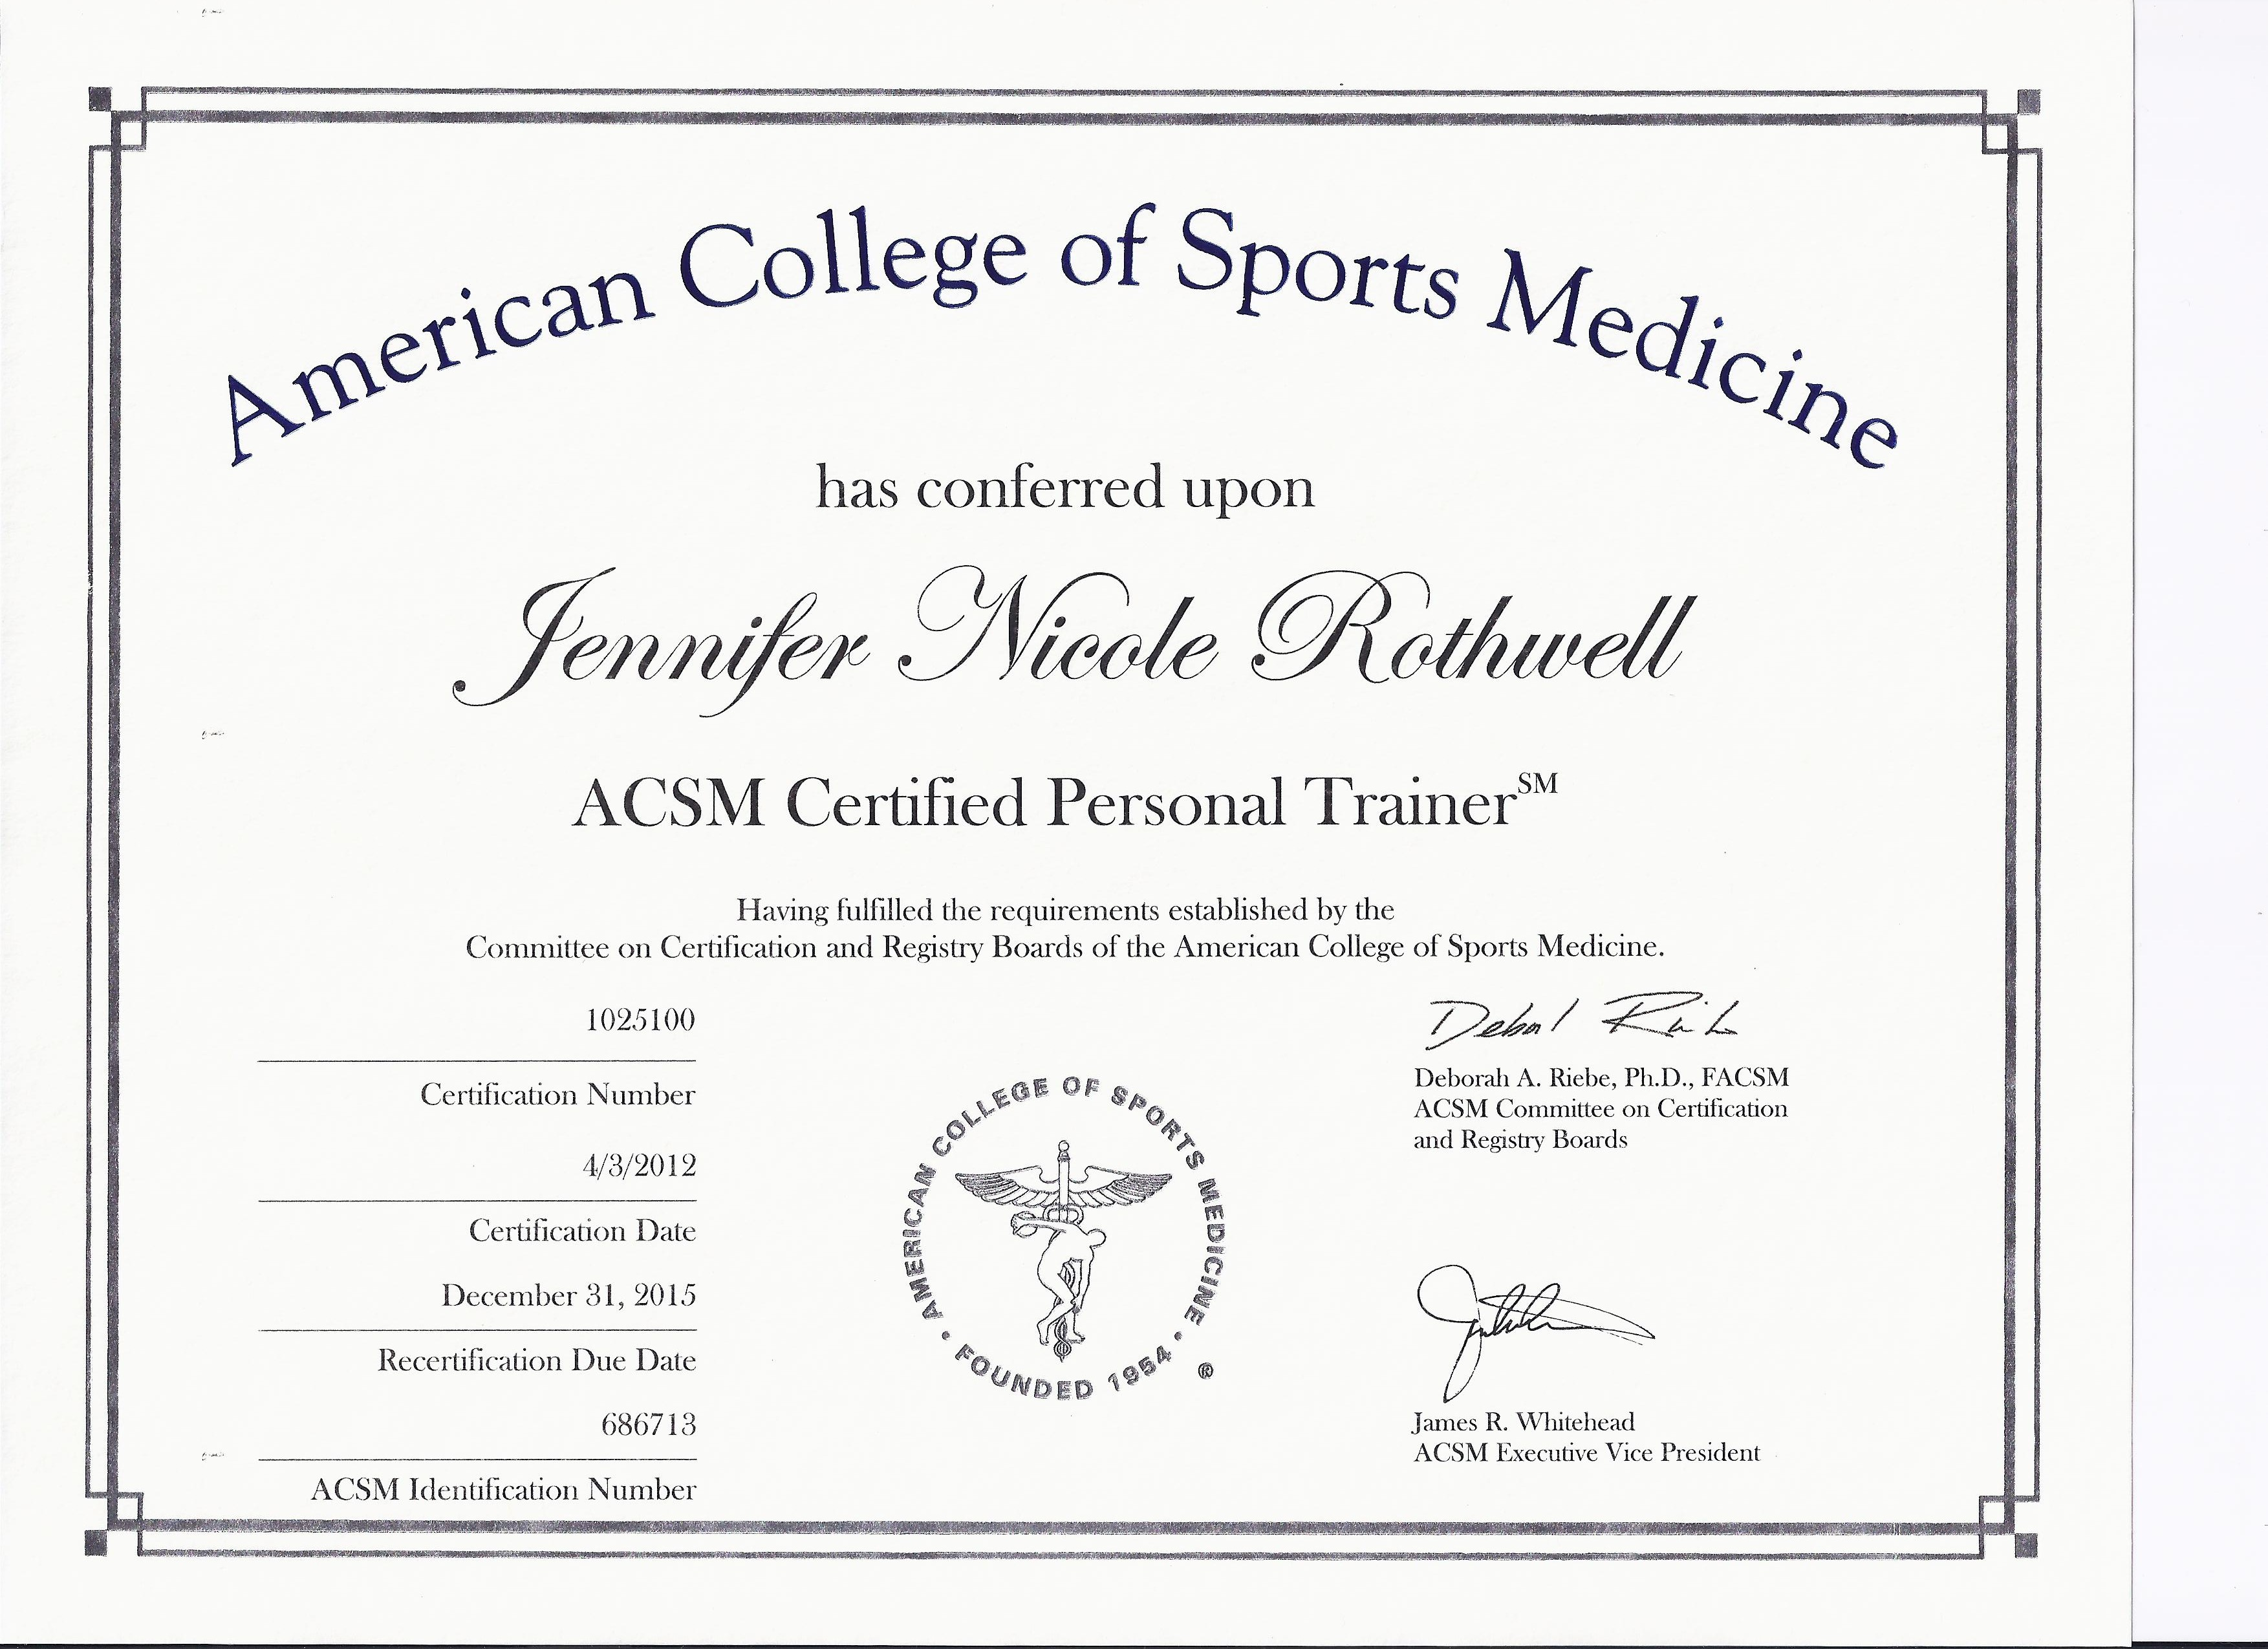 Acsm Cpt Certificate Rothwell Mixed Martial Arts